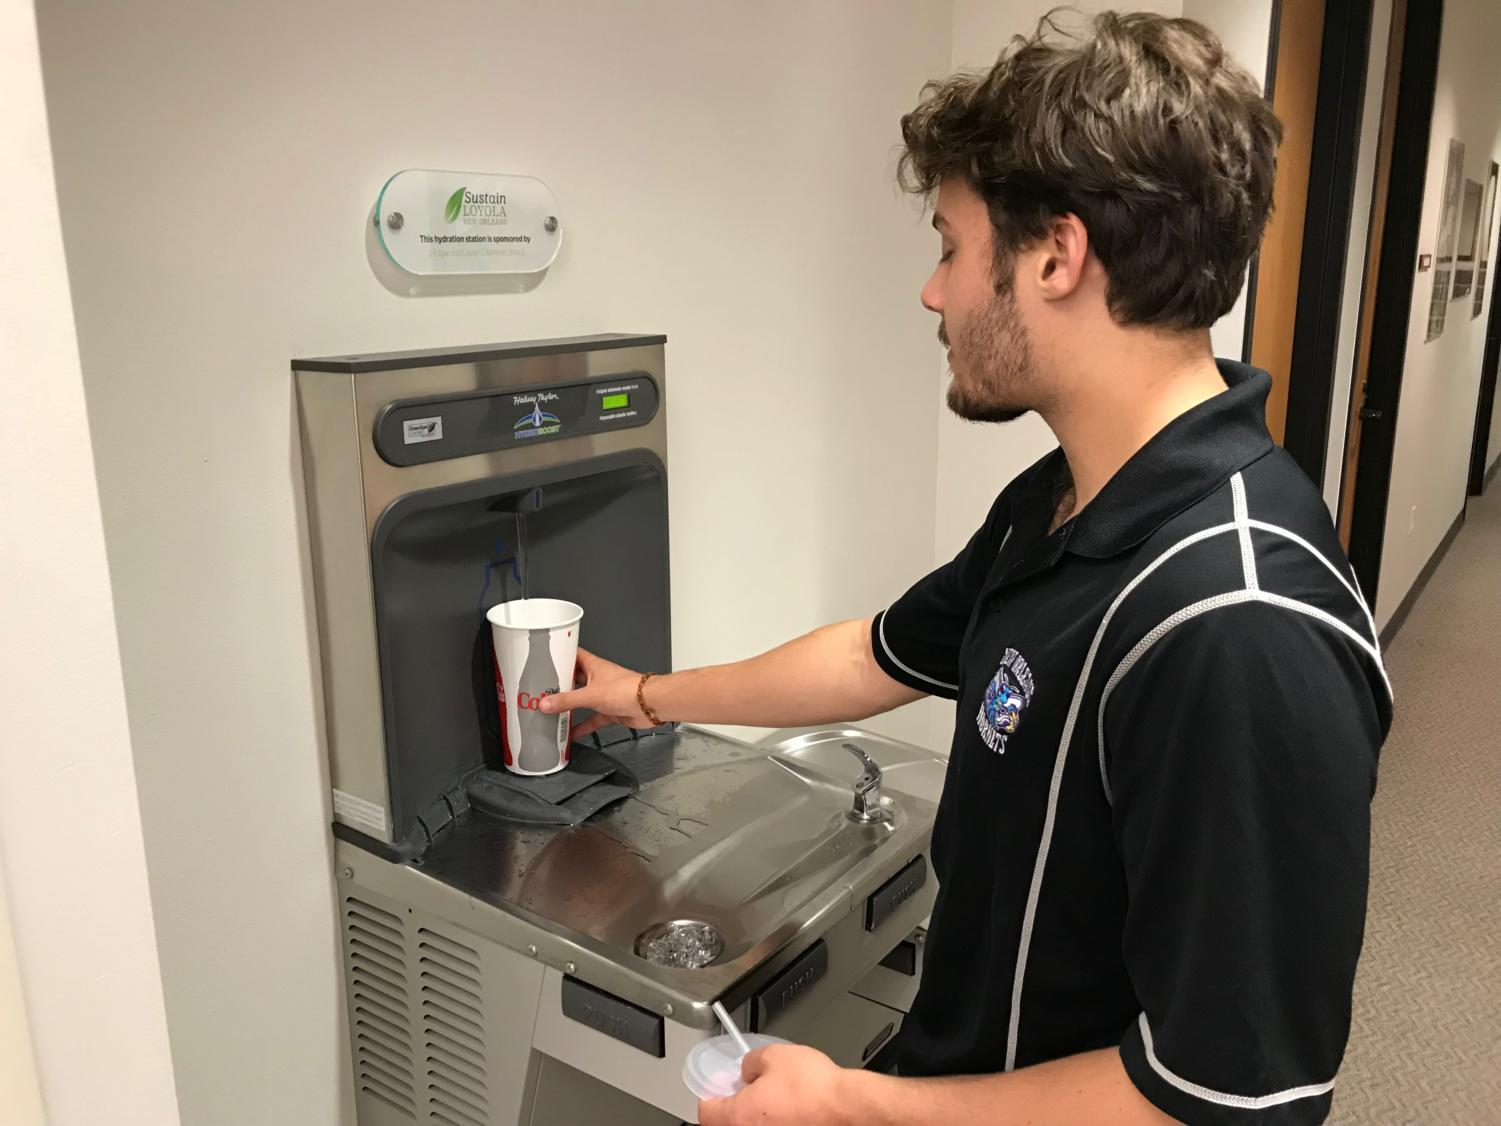 Mass communication junior Nick Boulet uses a water refill station in the Monroe Library.  The stations have eliminated waste from millions of water bottles. Photo credit: John Casey